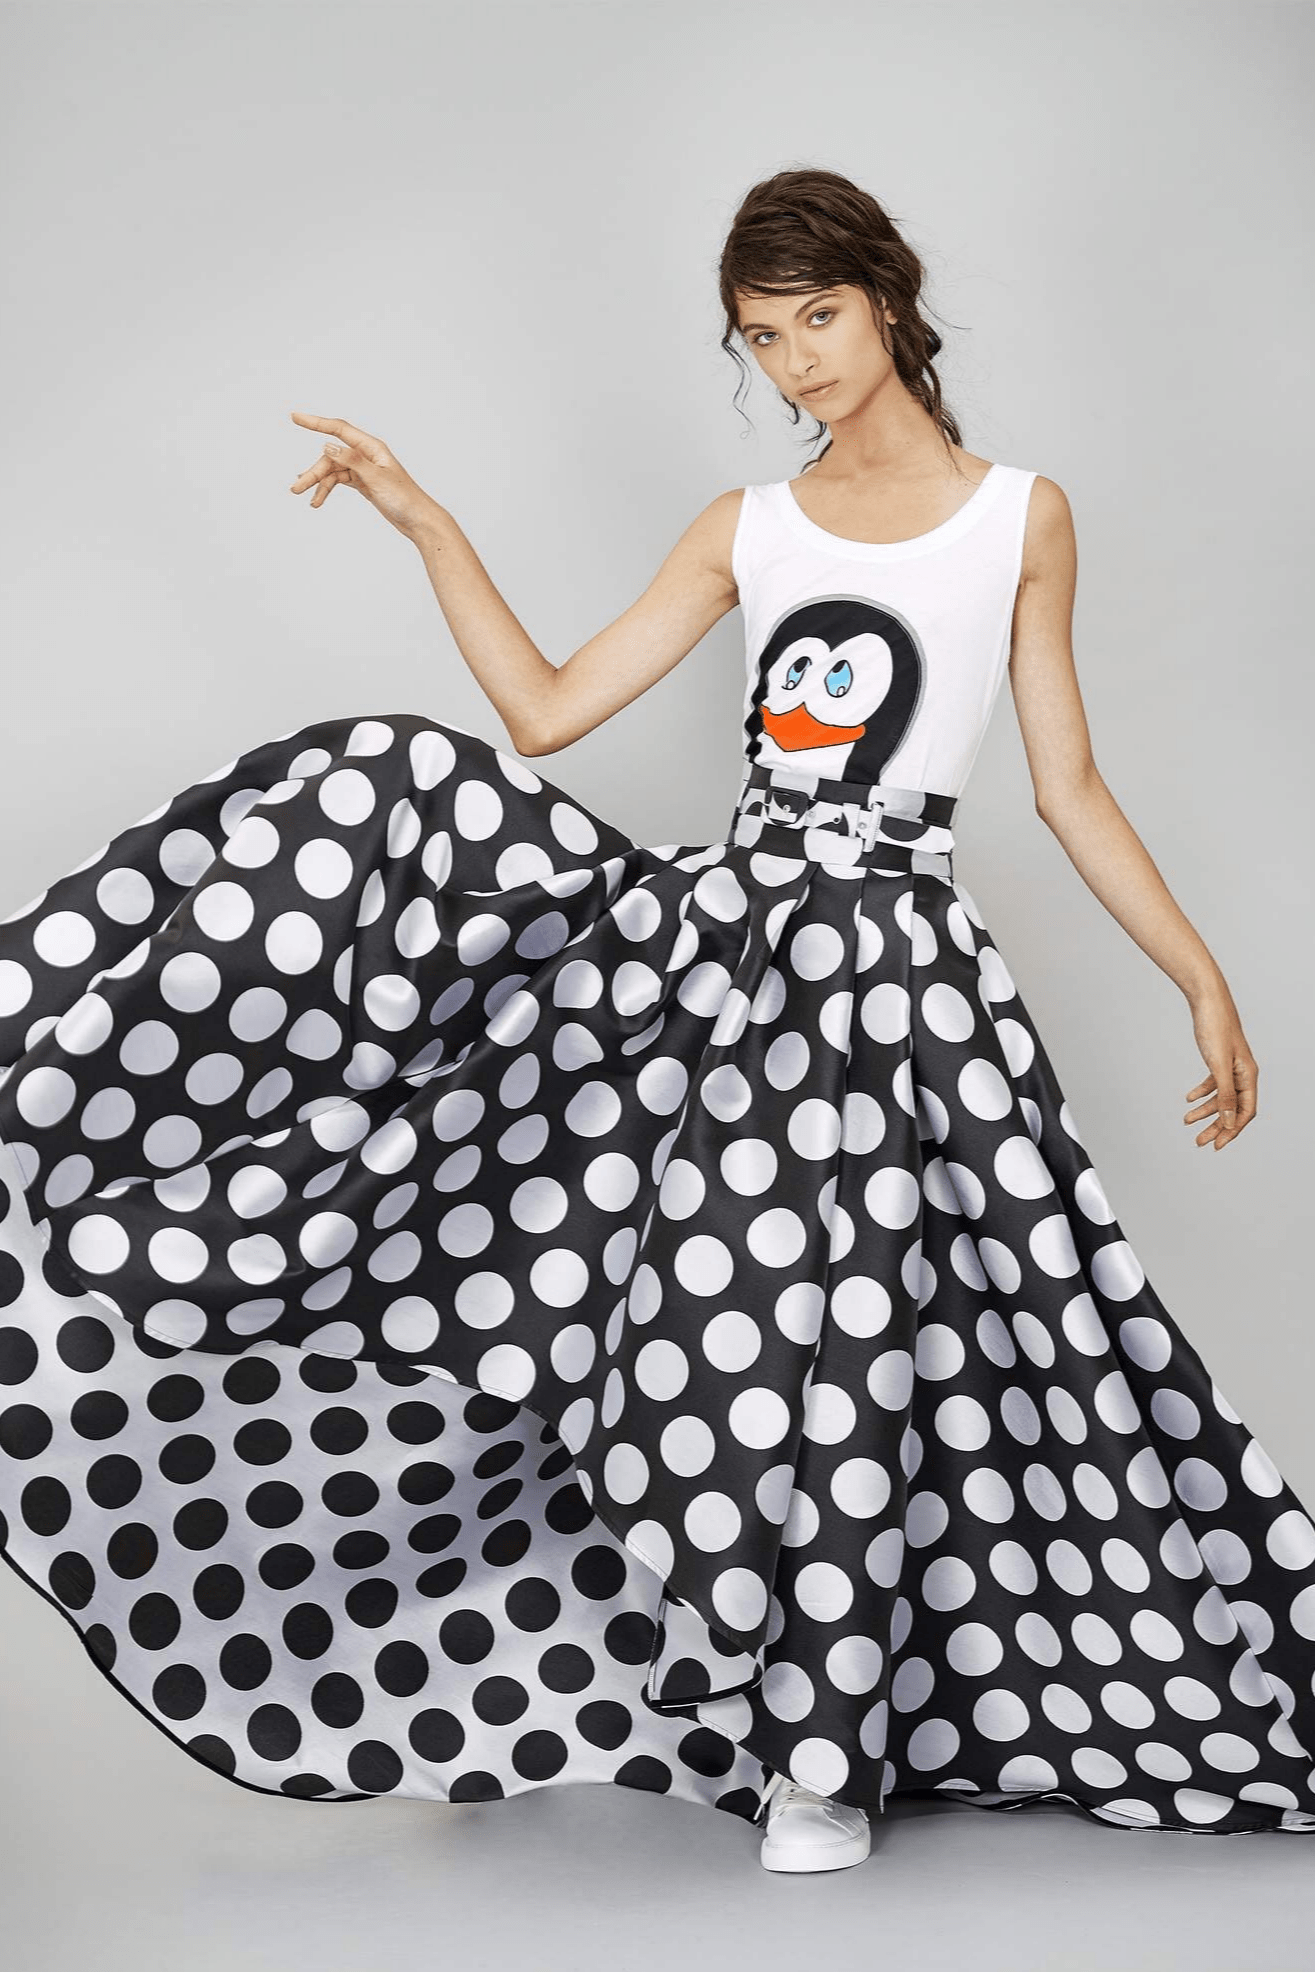 Pingu Print Cotton Tank Top - The Bobby Boga